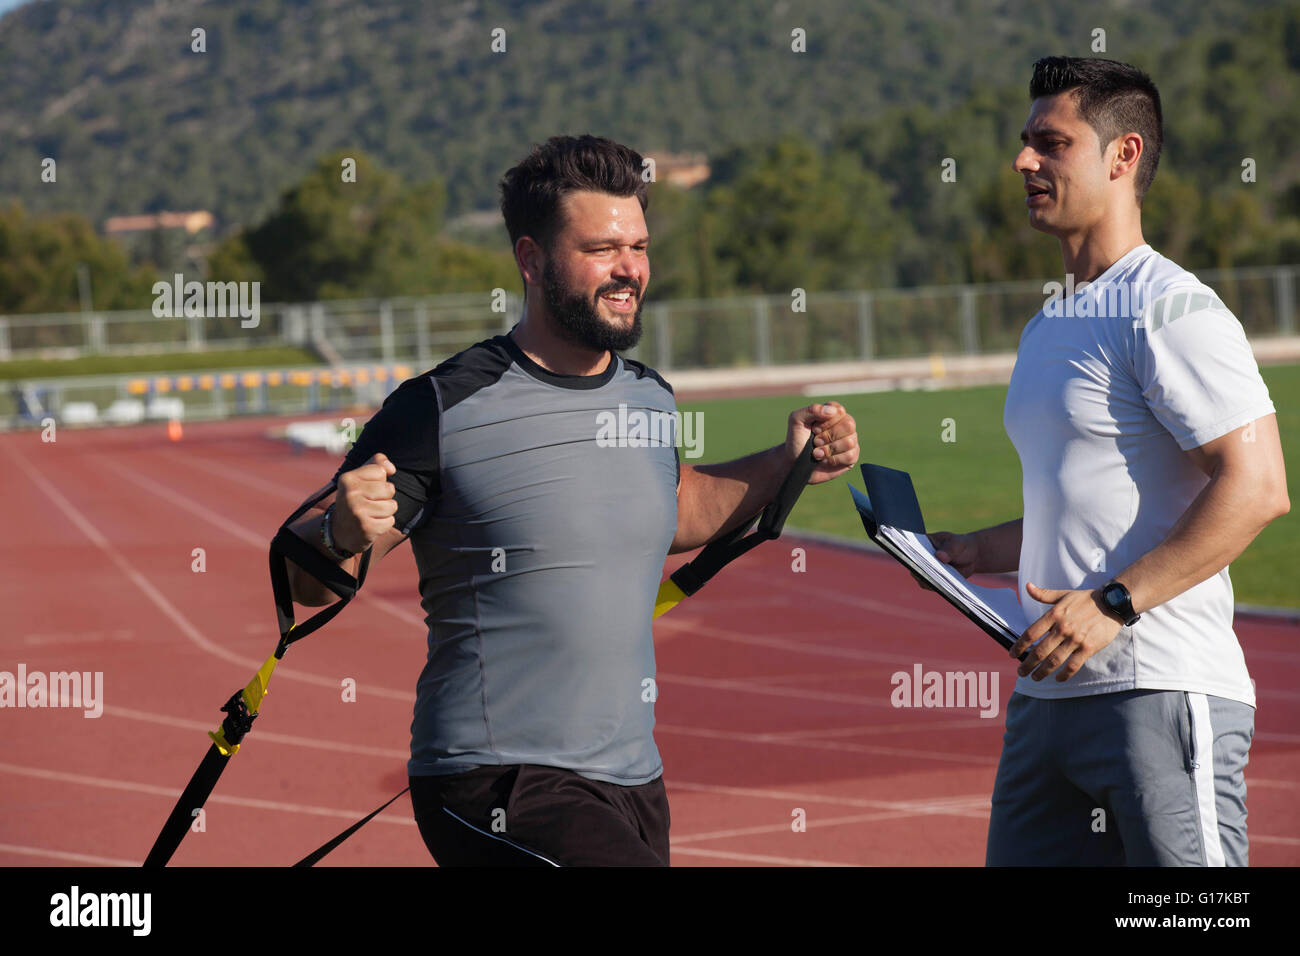 personal trainer workout fitness session - Stock Image